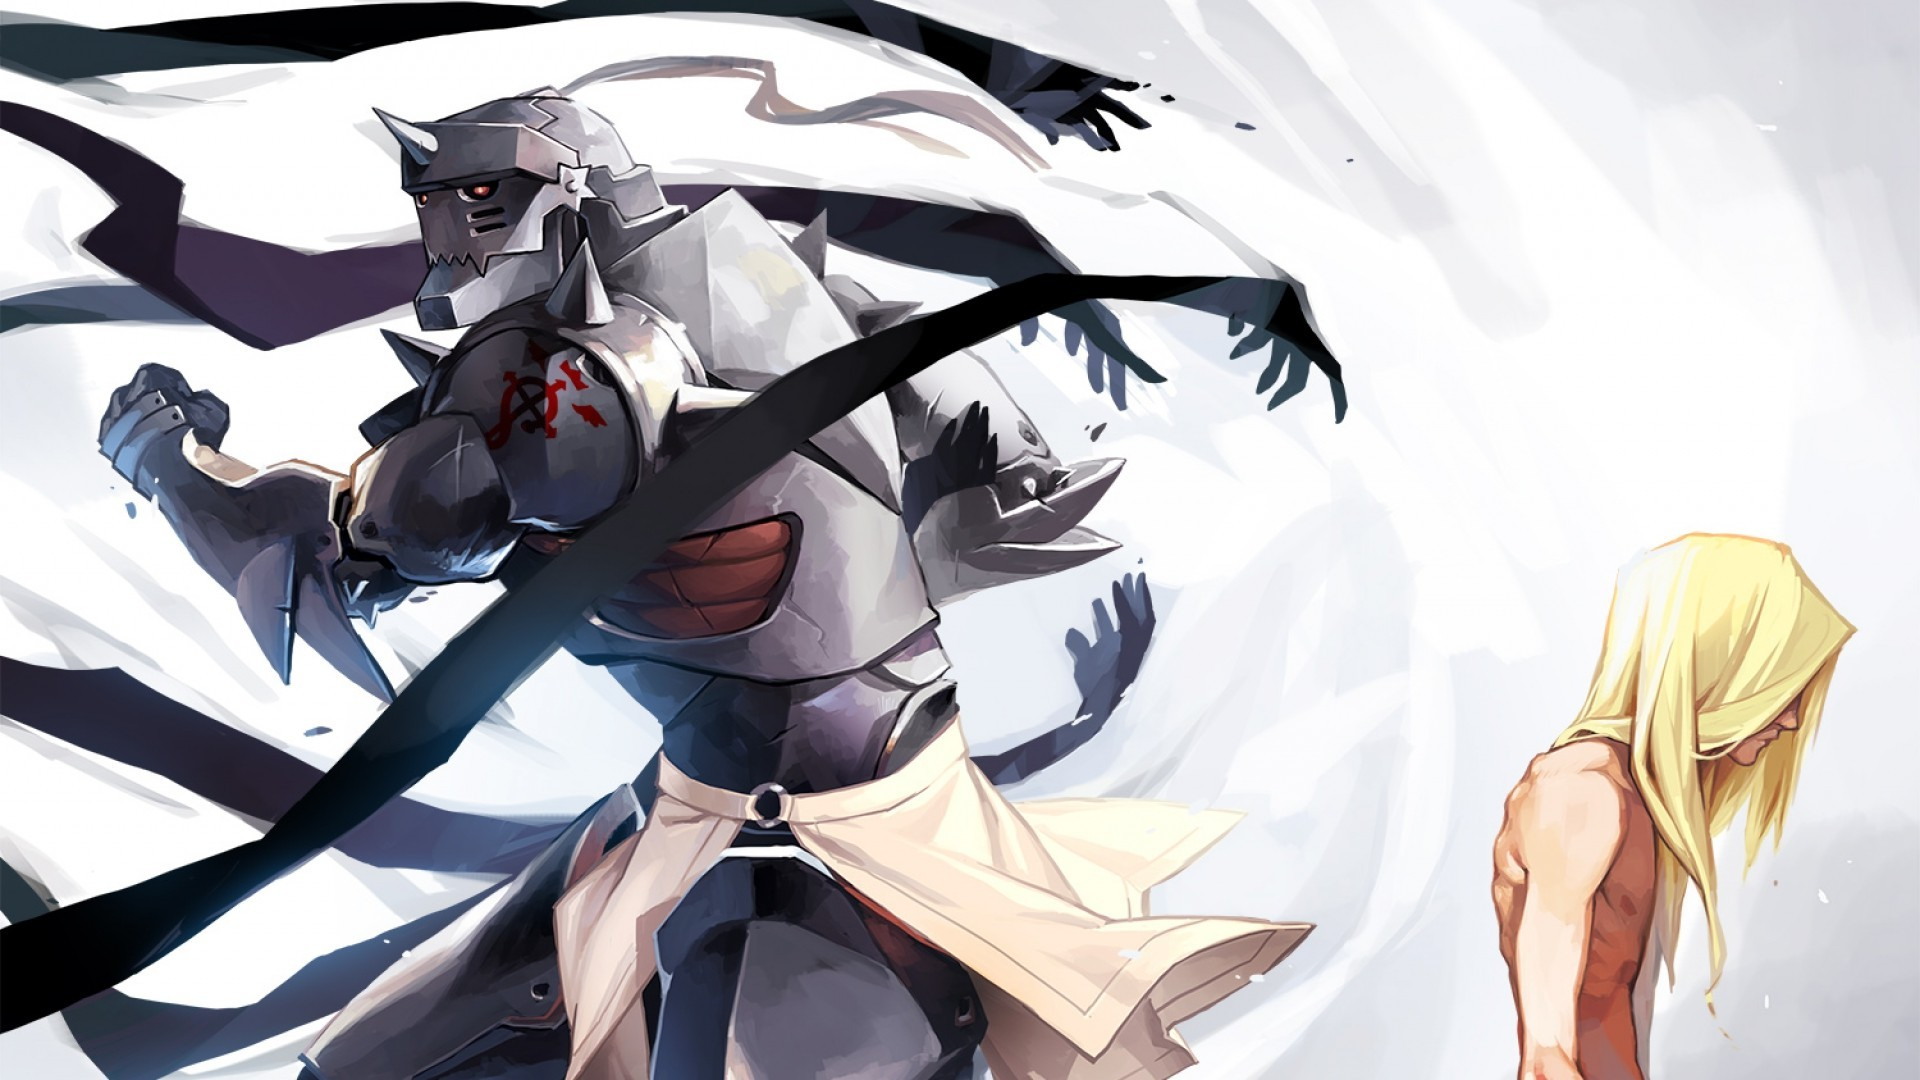 Epic Animal Wallpapers Anime Elric Alphonse Wallpapers Hd Desktop And Mobile